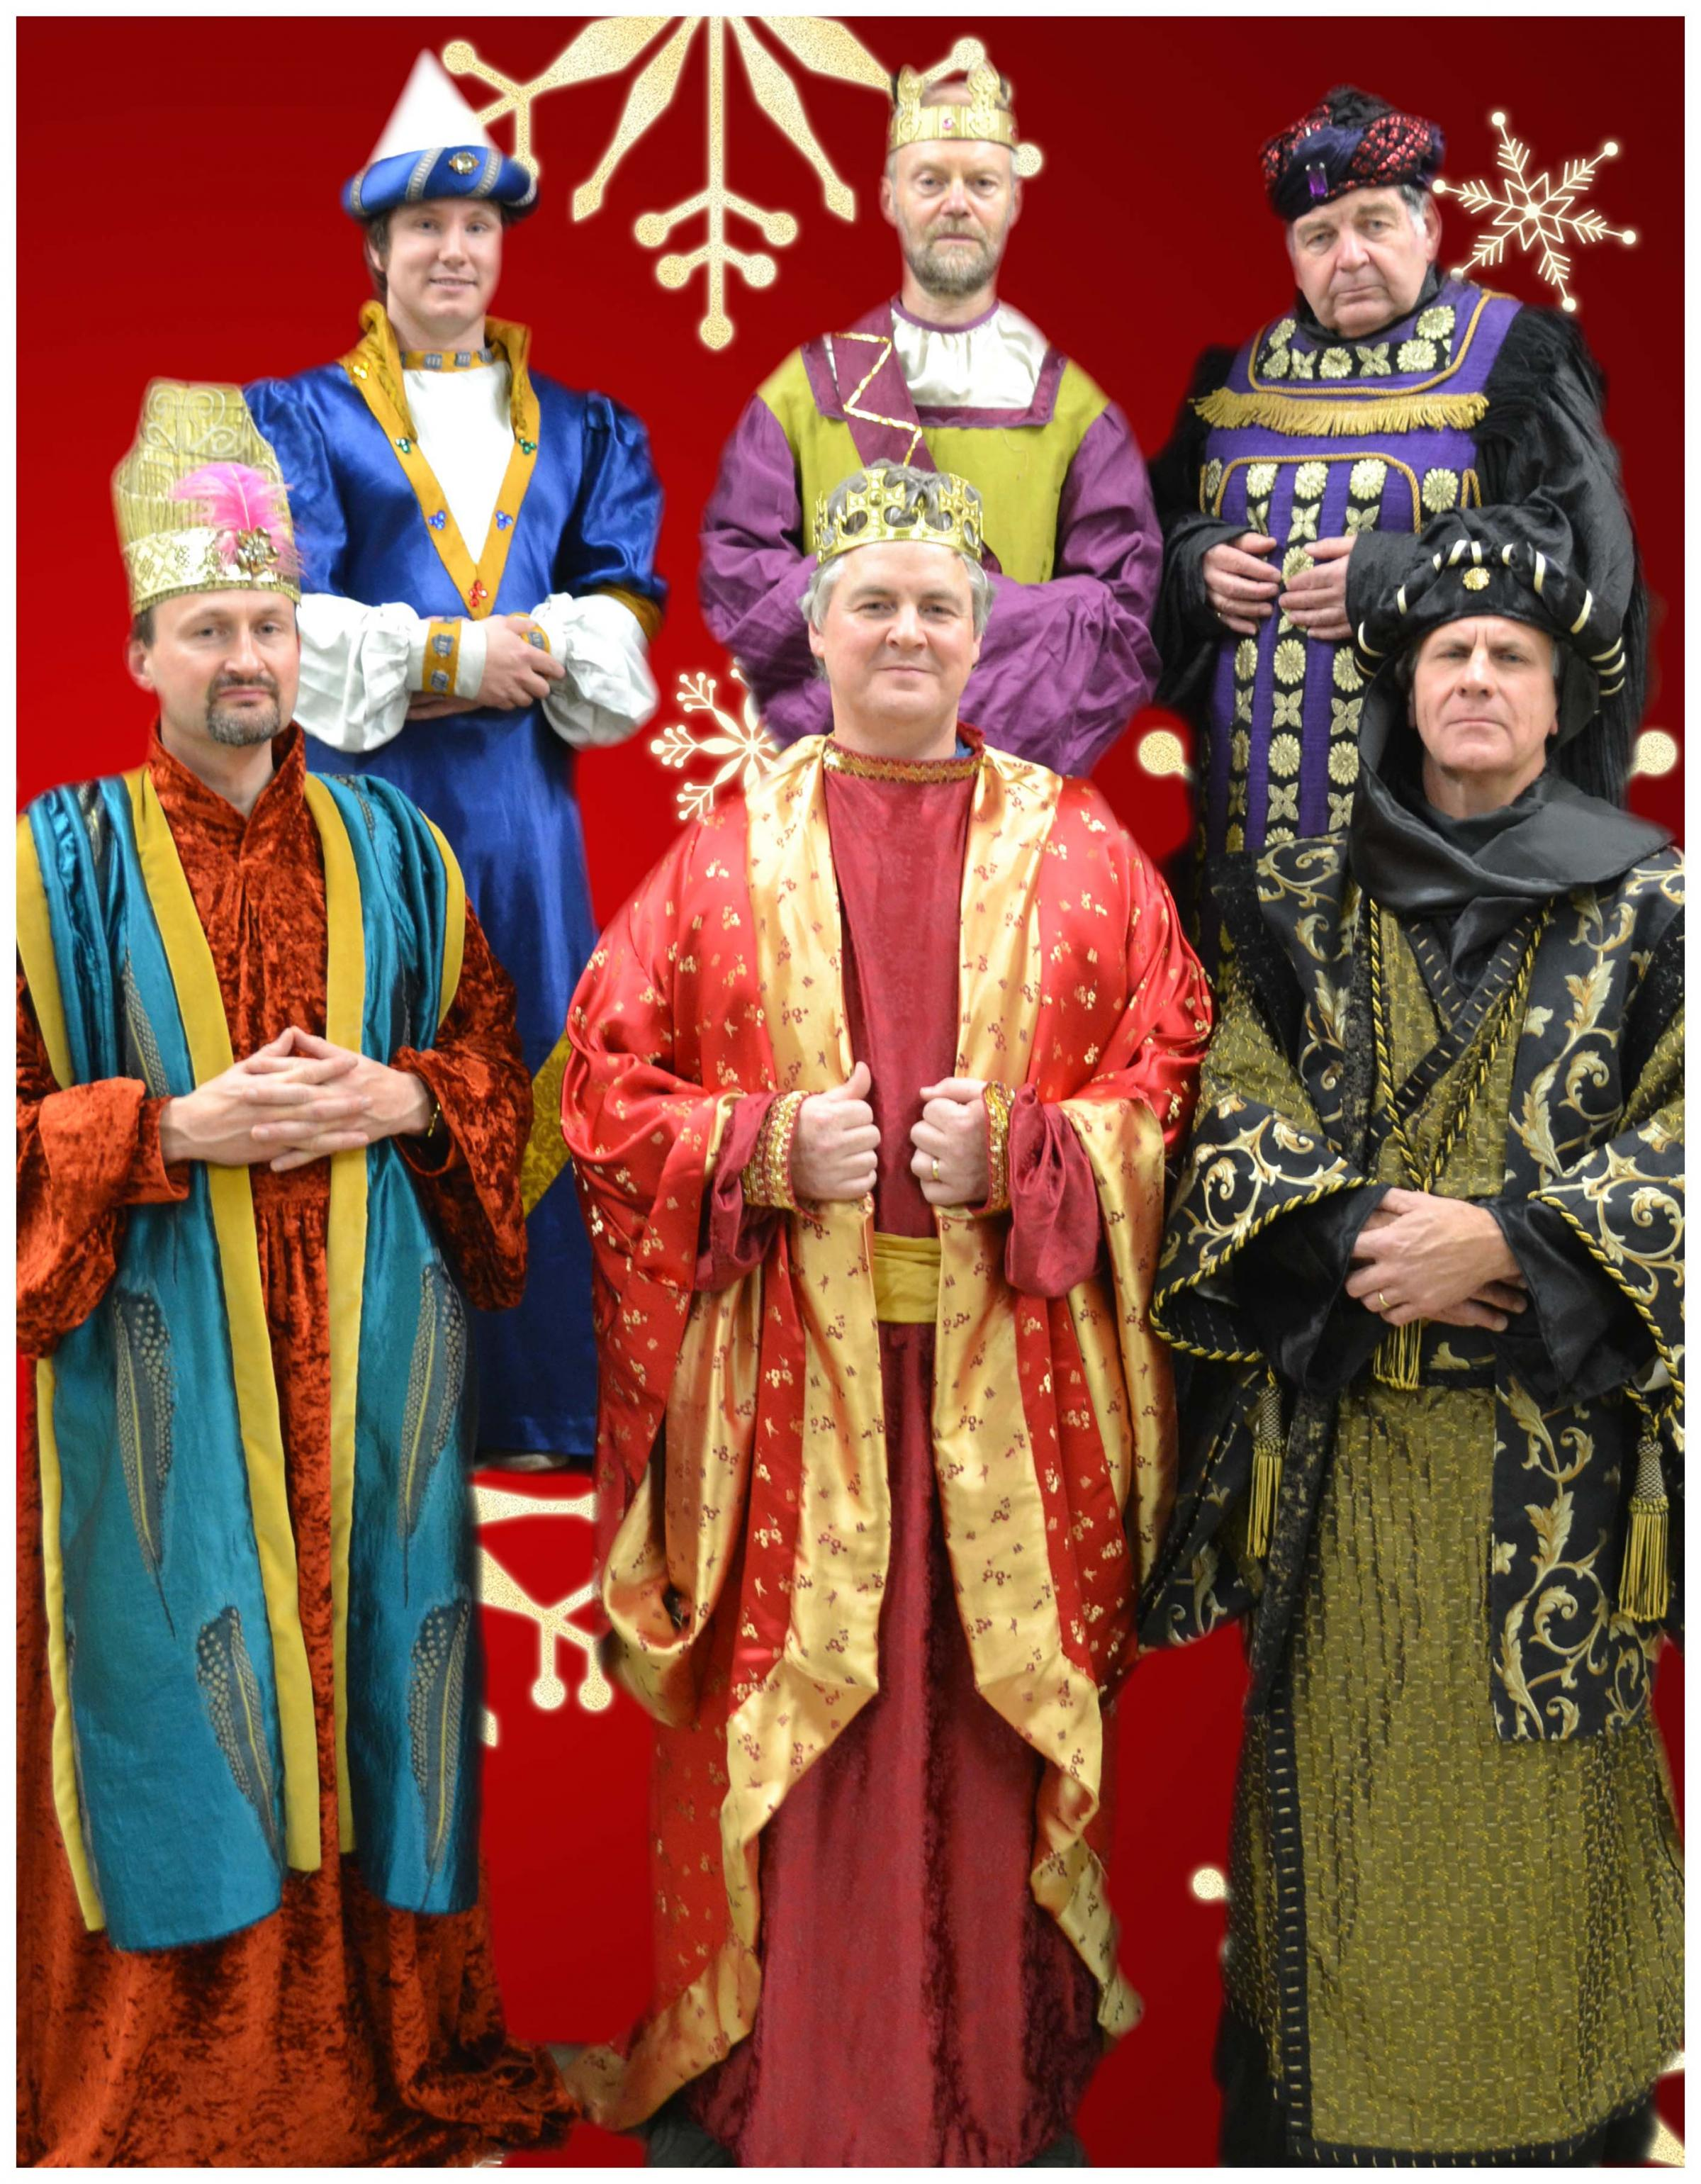 The six kings in York Opera's brace of Nativity performances. Top, from left, Michael Foster, Peter Burgess and Ian Small; bottom, Hamish Brown, Ian Thomson-Smith and Duncan Campbell